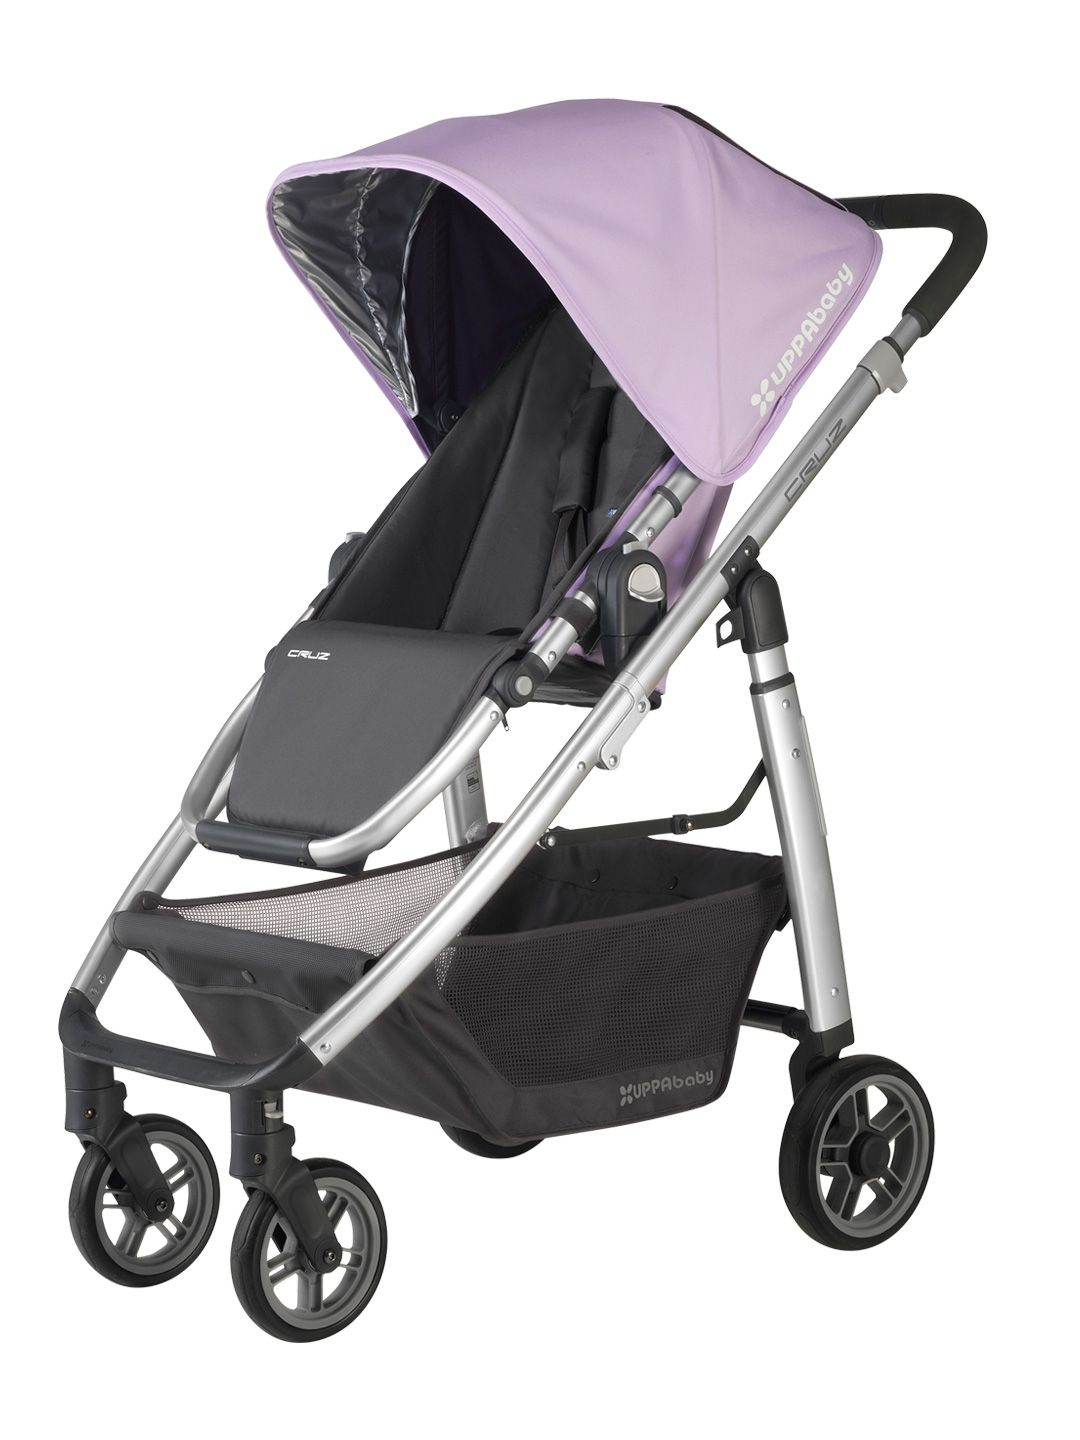 Cruz 2014 Stroller by Uppababy at Gilt very good deal